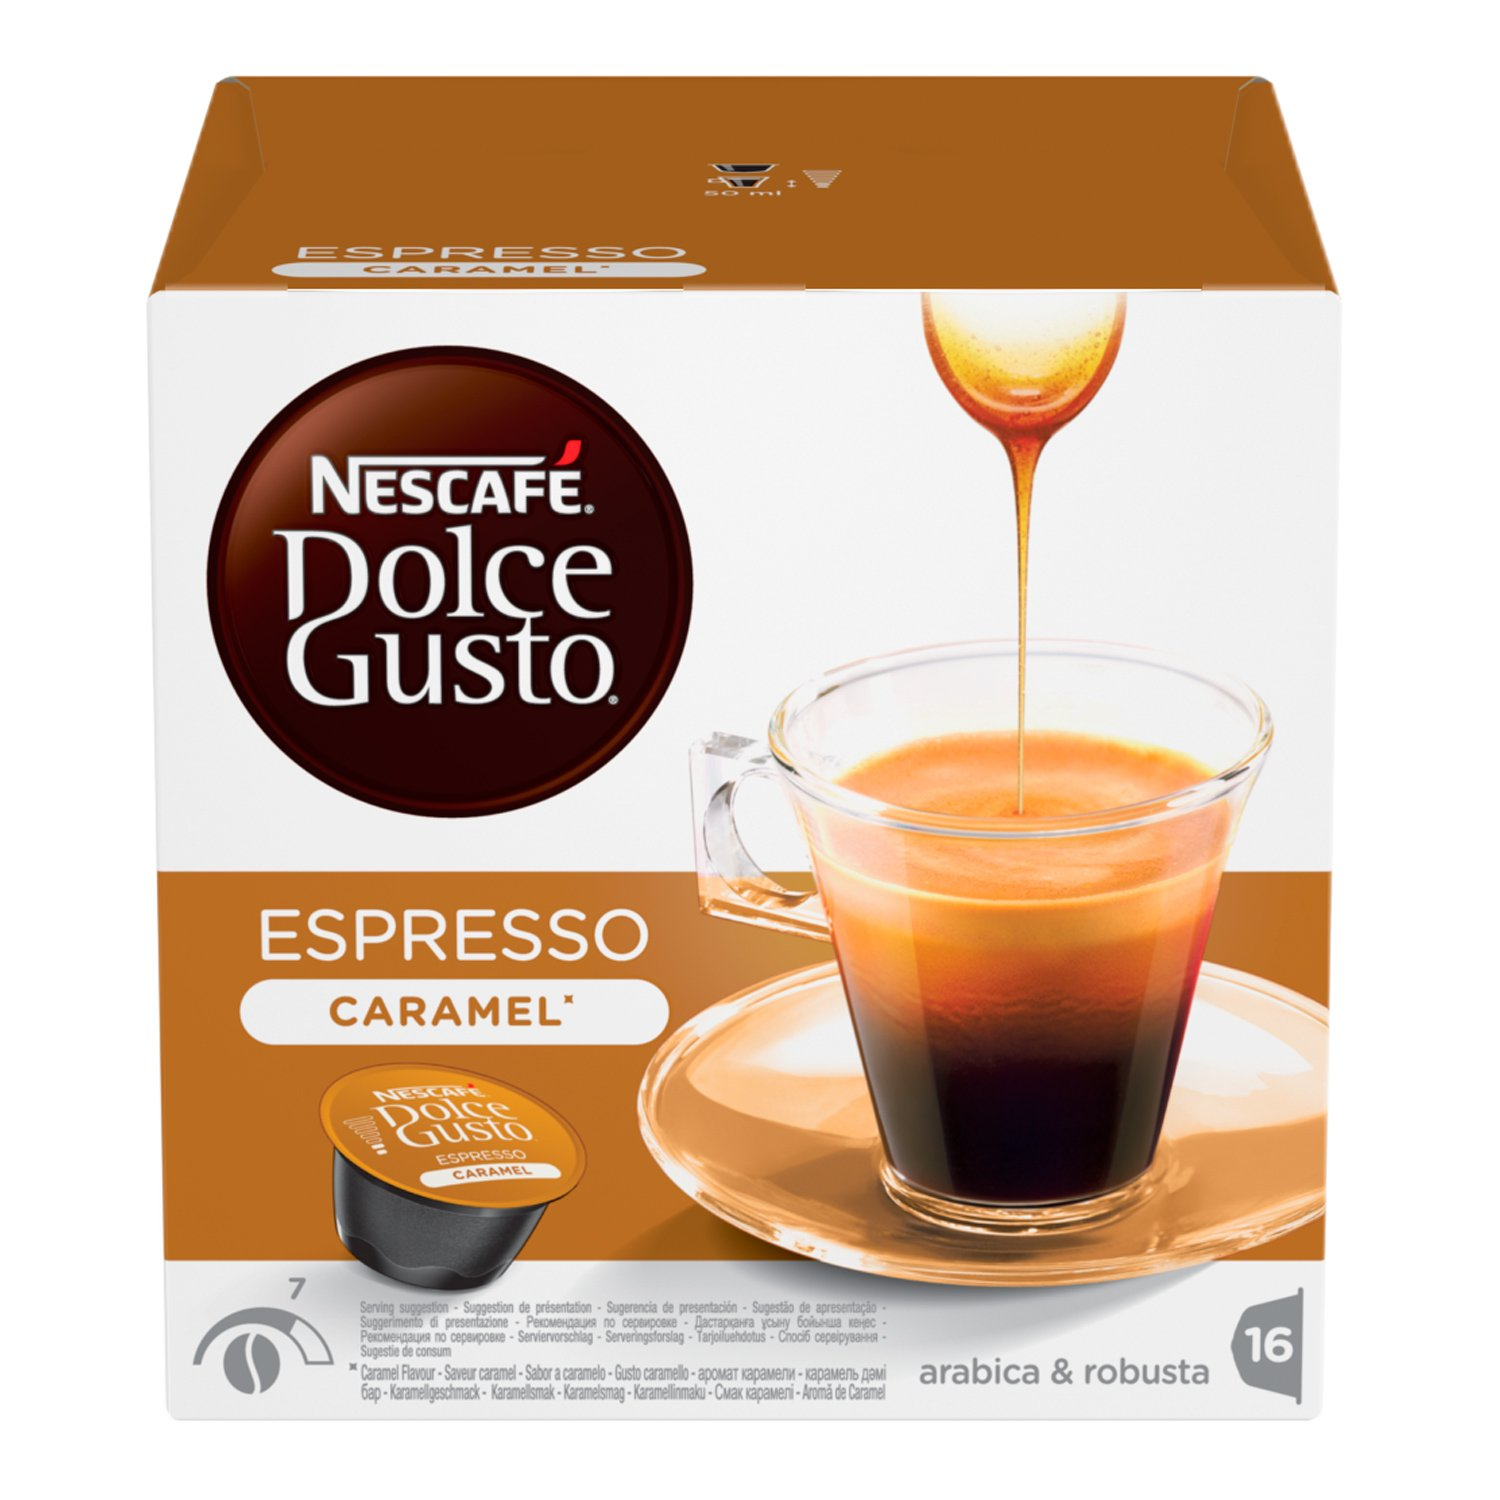 Nescafé Dolce Gusto Espresso coffee pods and capsules (a caramel notes coffee with aromas of caramel and roasted)